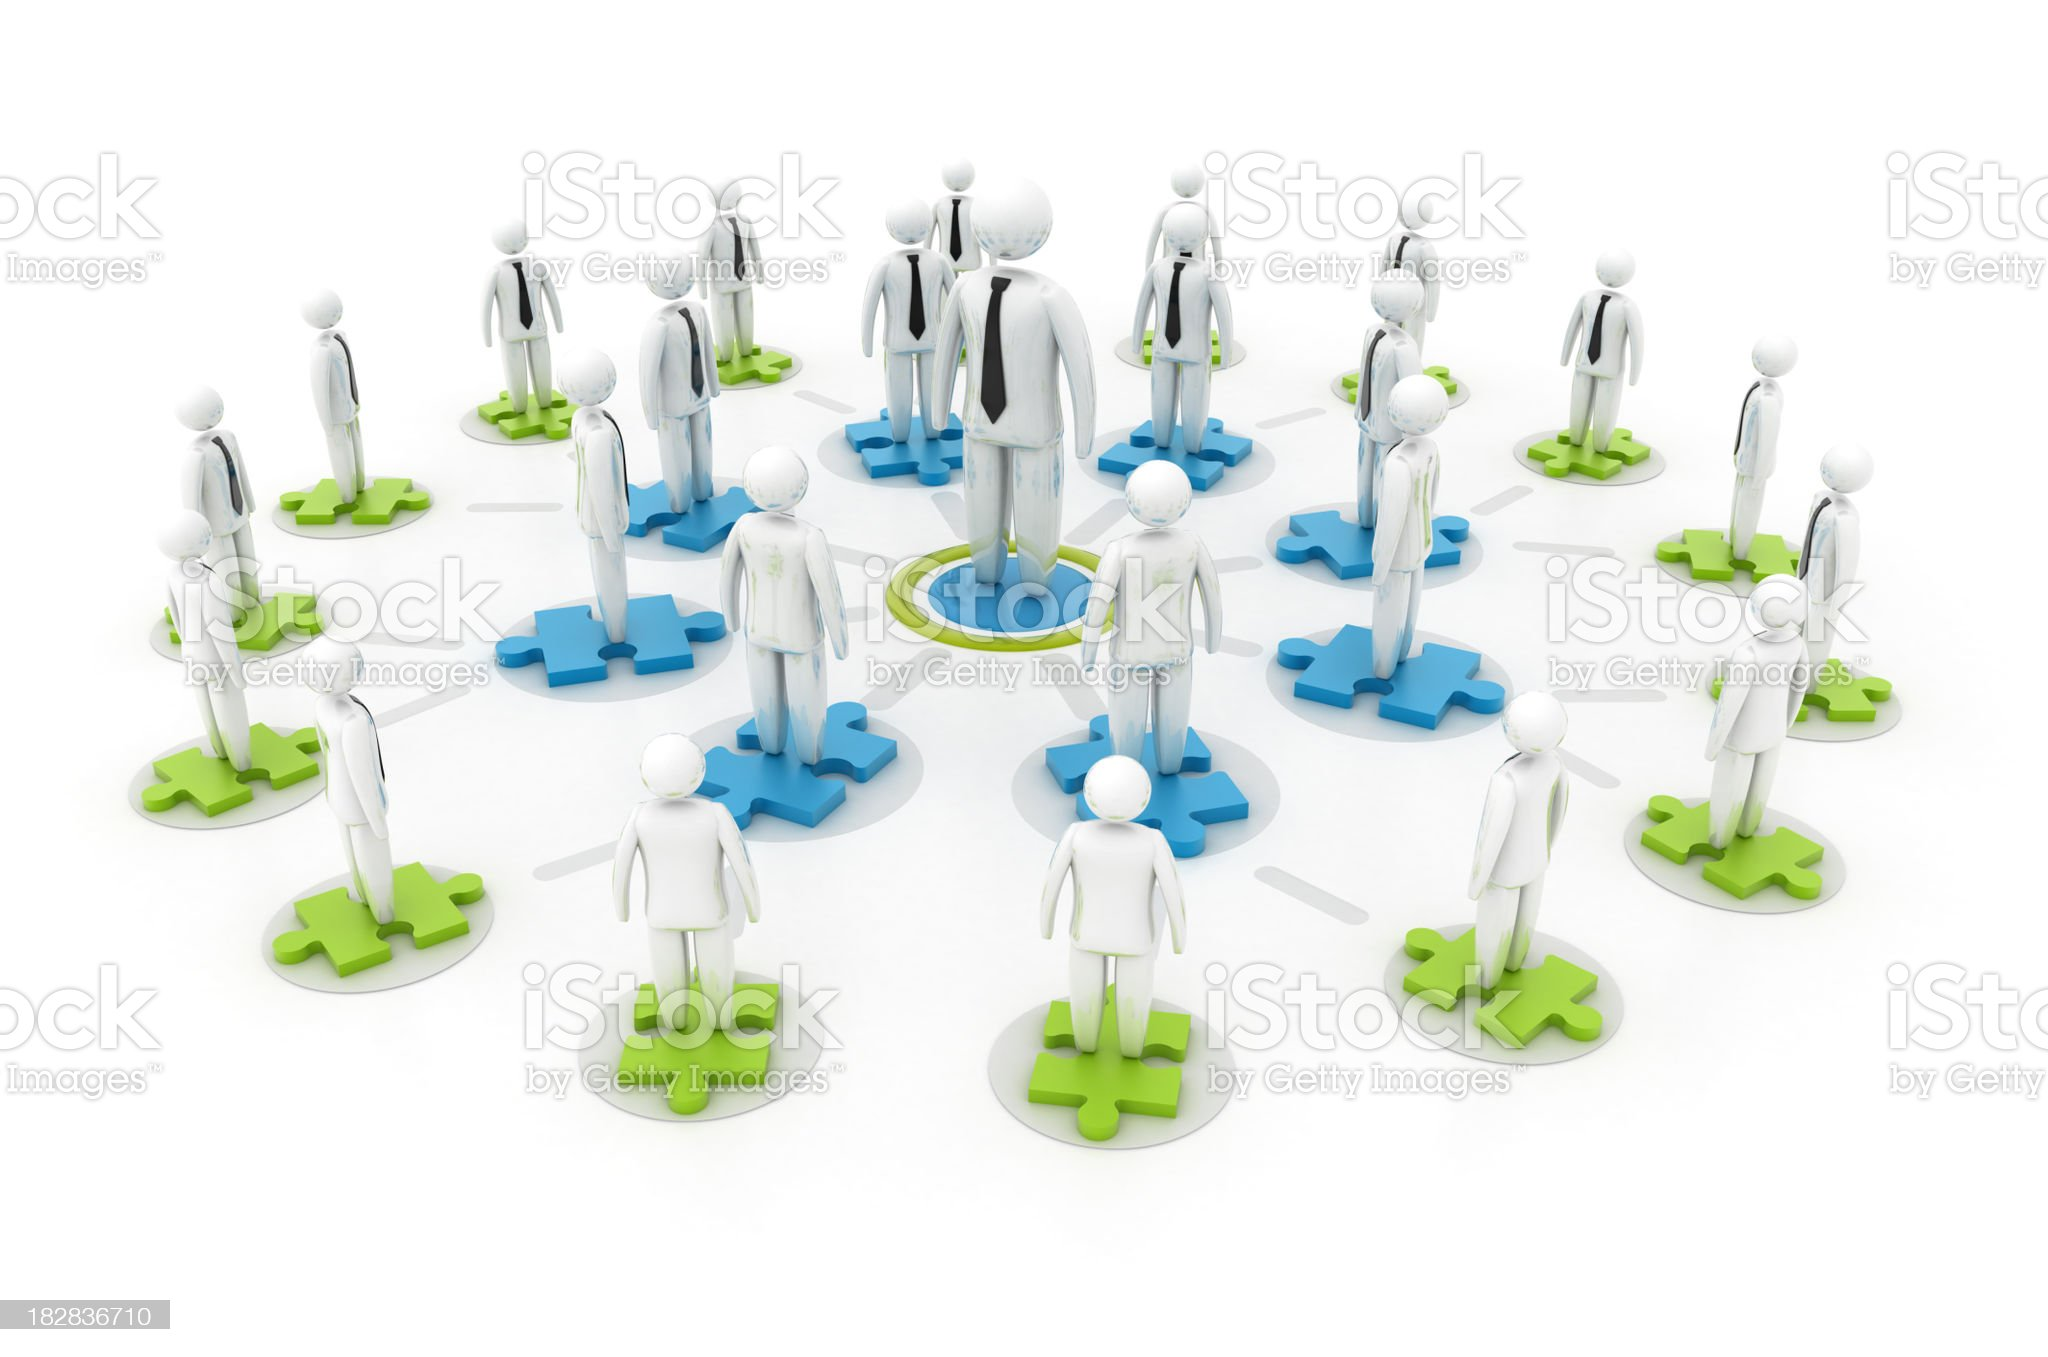 Businessman - Network concept royalty-free stock photo